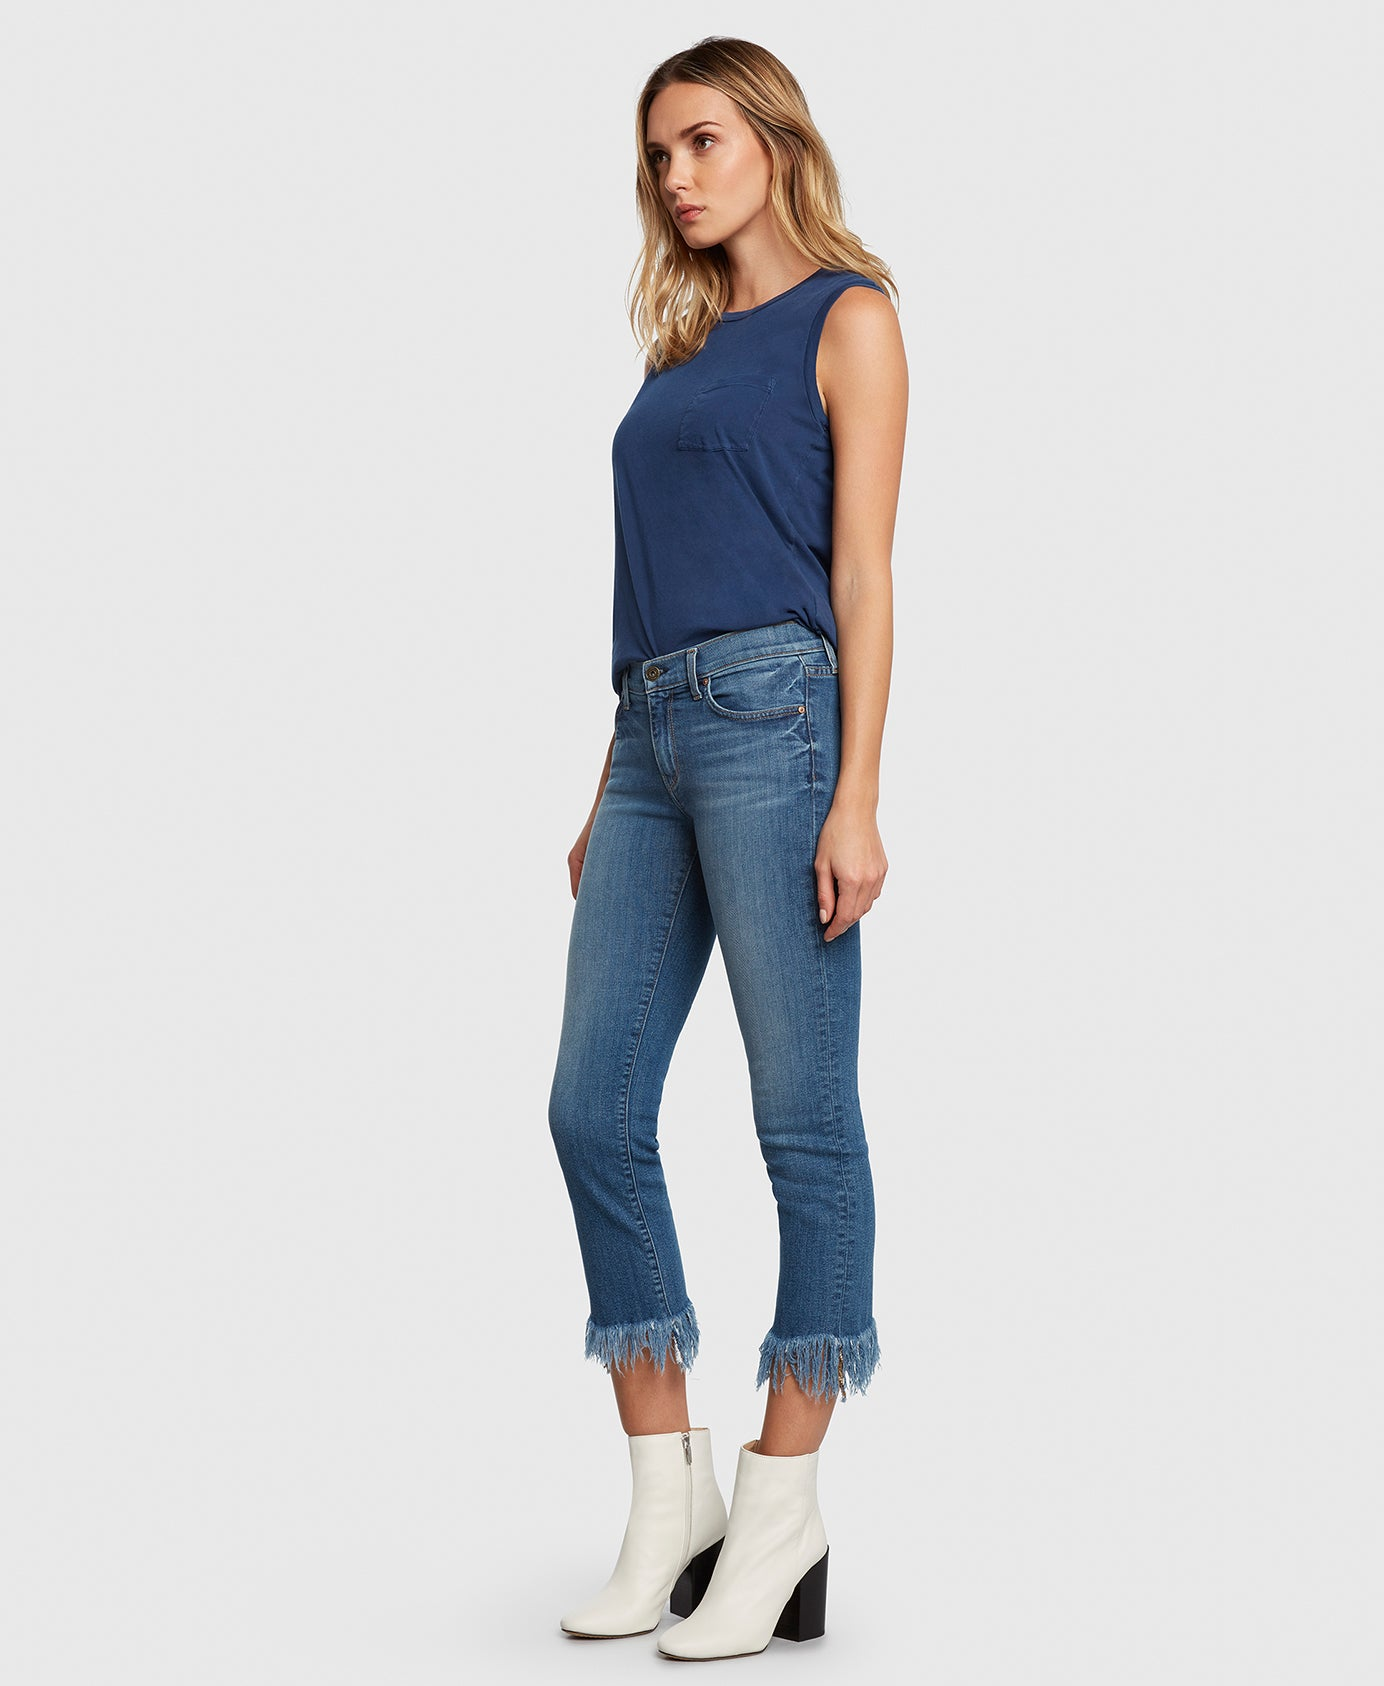 Principle OPTIMIST in True cropped jeans side